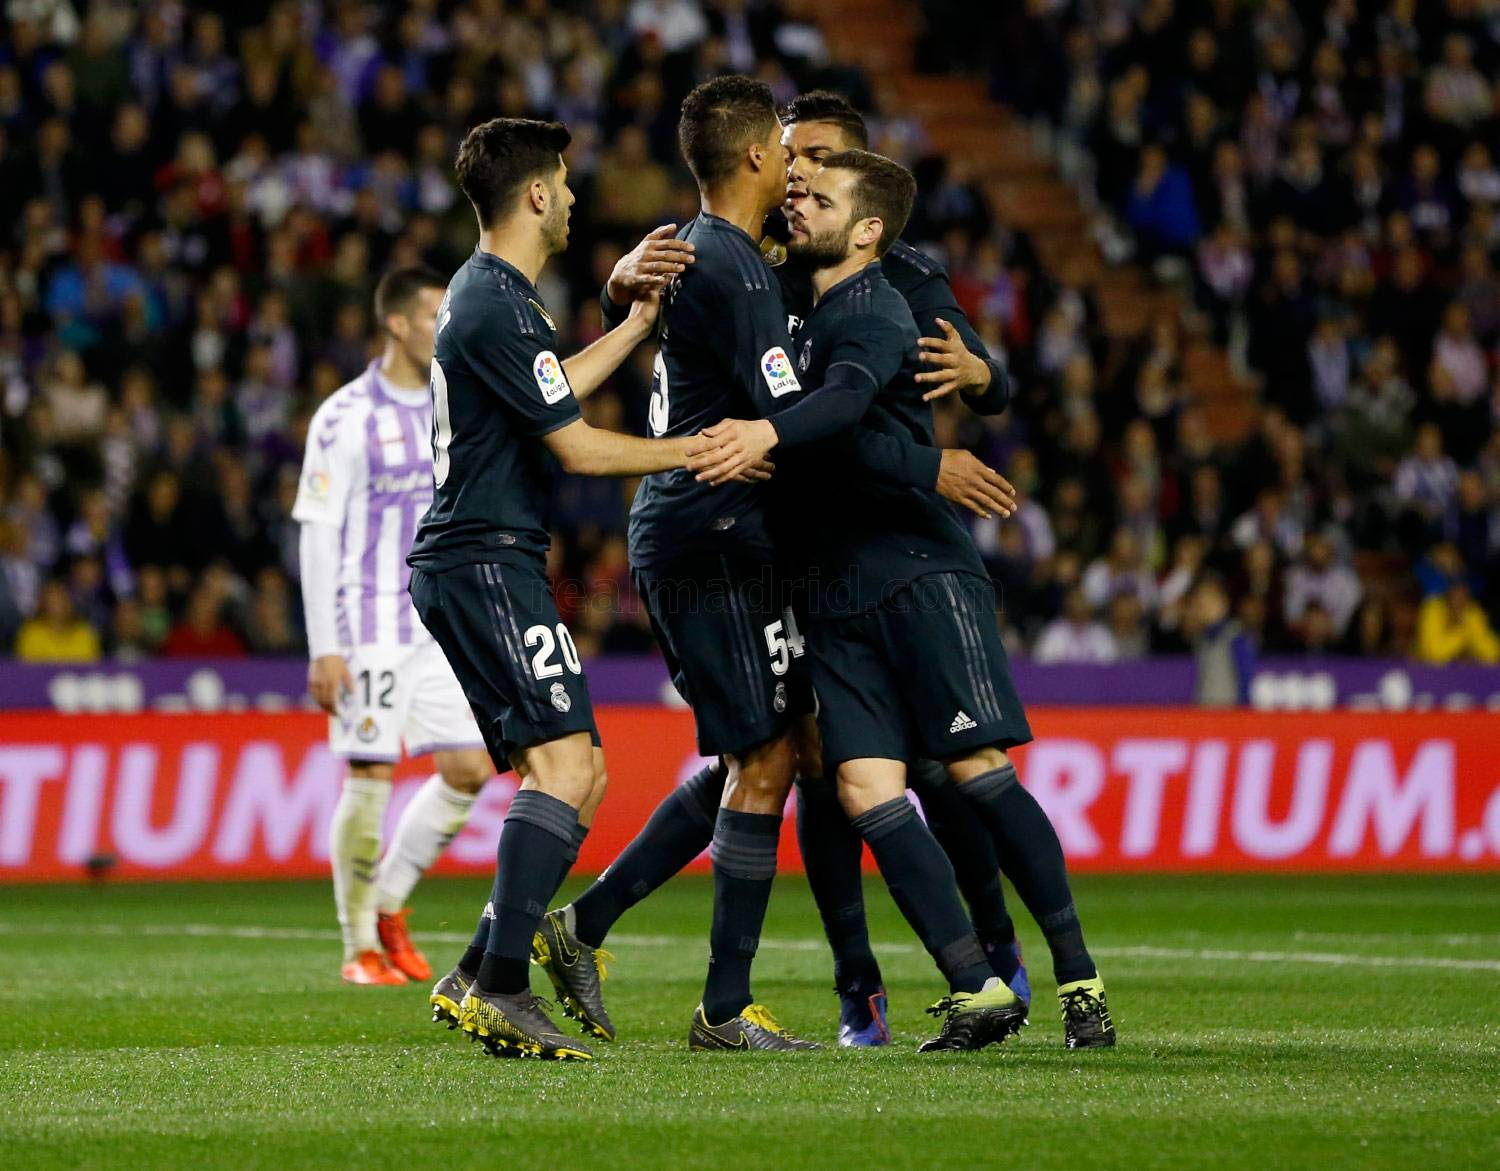 Real Madrid - Valladolid - Real Madrid - 10-03-2019